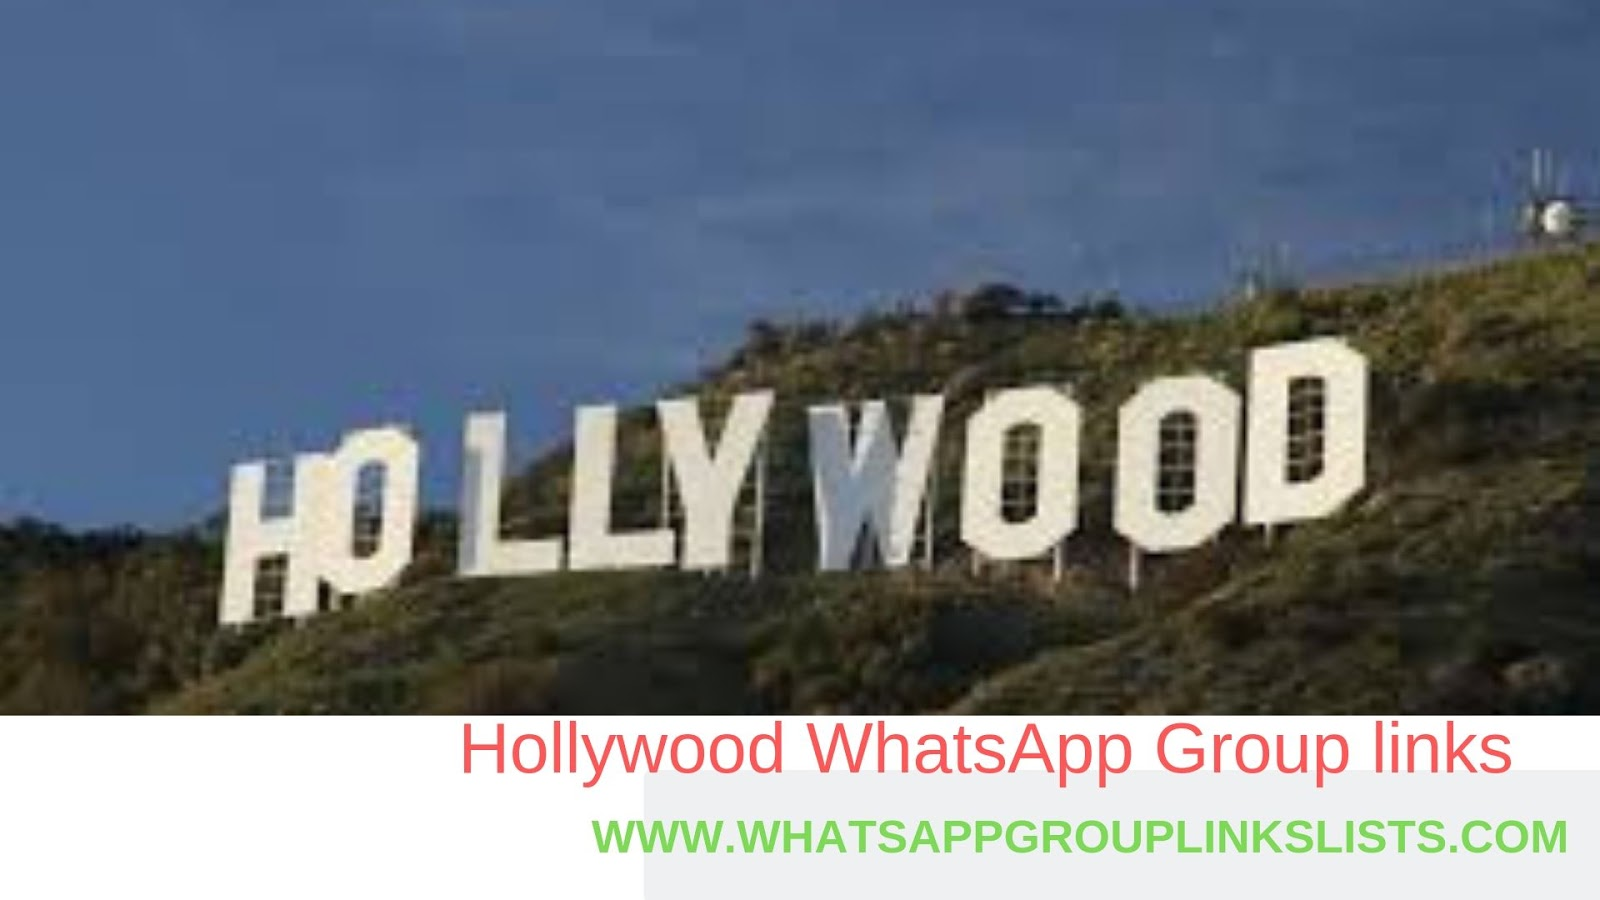 Join Hollywood WhatsApp Group Links List